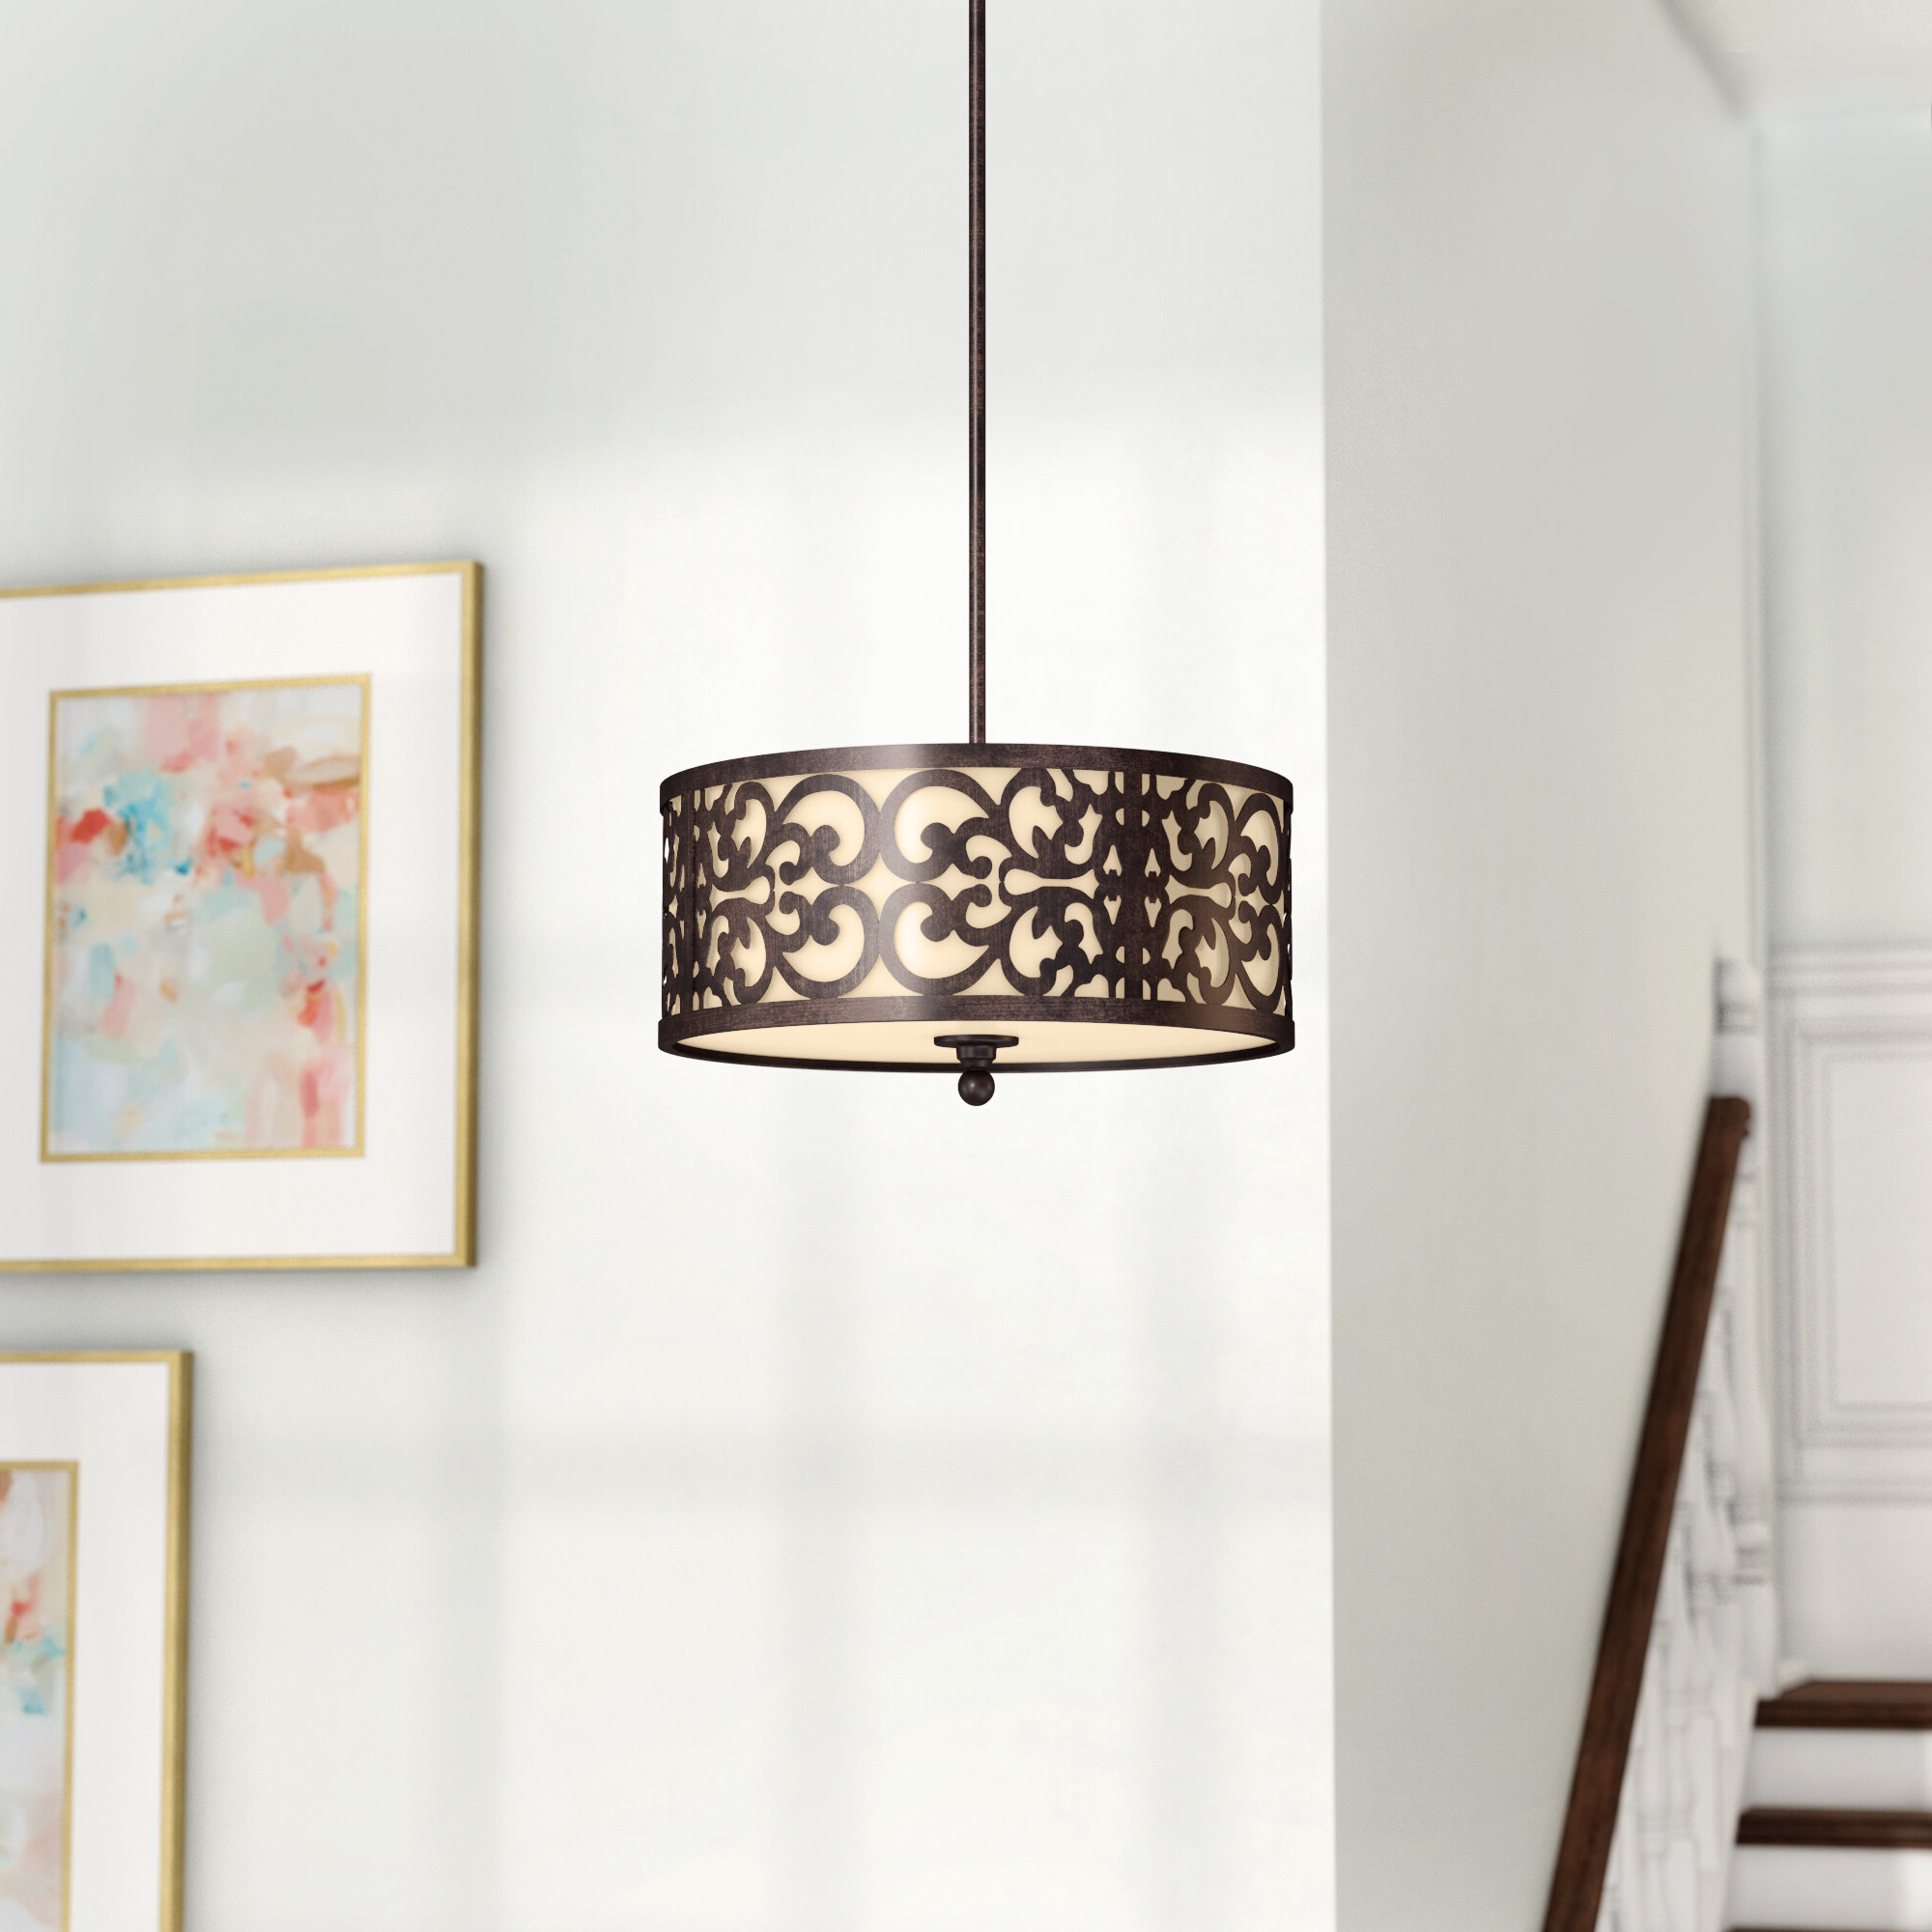 [%Fleur De Lis Living Pendant Lighting Sale – Up To 65% Off For Well Known Willems 1 Light Single Drum Pendants|Willems 1 Light Single Drum Pendants Throughout 2019 Fleur De Lis Living Pendant Lighting Sale – Up To 65% Off|Favorite Willems 1 Light Single Drum Pendants Intended For Fleur De Lis Living Pendant Lighting Sale – Up To 65% Off|Favorite Fleur De Lis Living Pendant Lighting Sale – Up To 65% Off Throughout Willems 1 Light Single Drum Pendants%] (View 6 of 20)